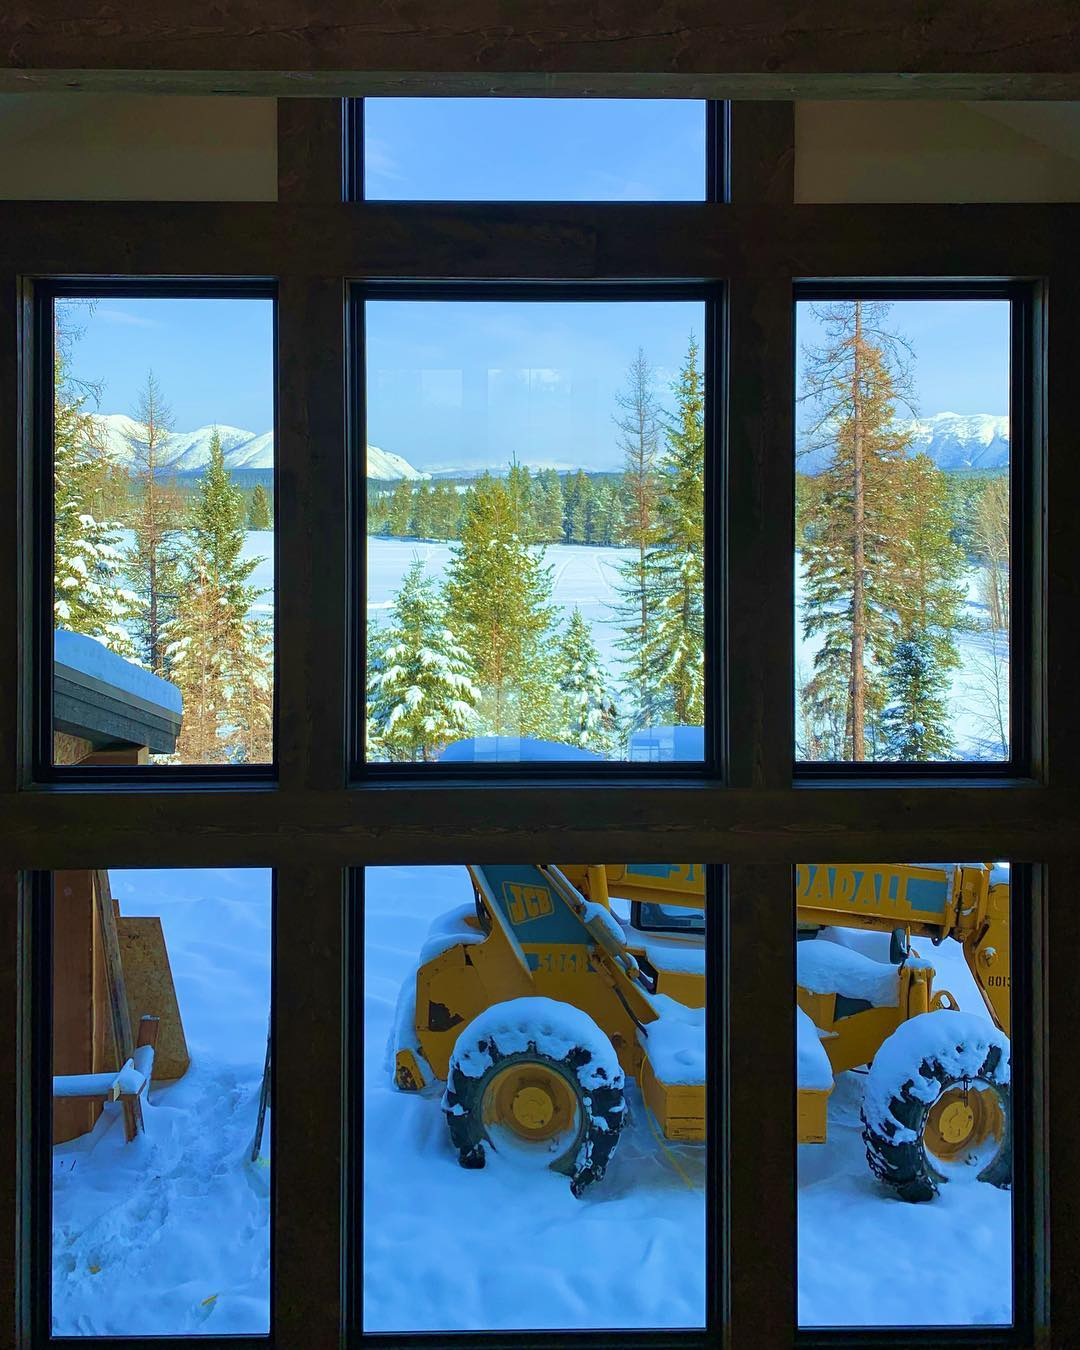 Window wall...minus the big yellow object...this view is perfection! whitefish custom home builder